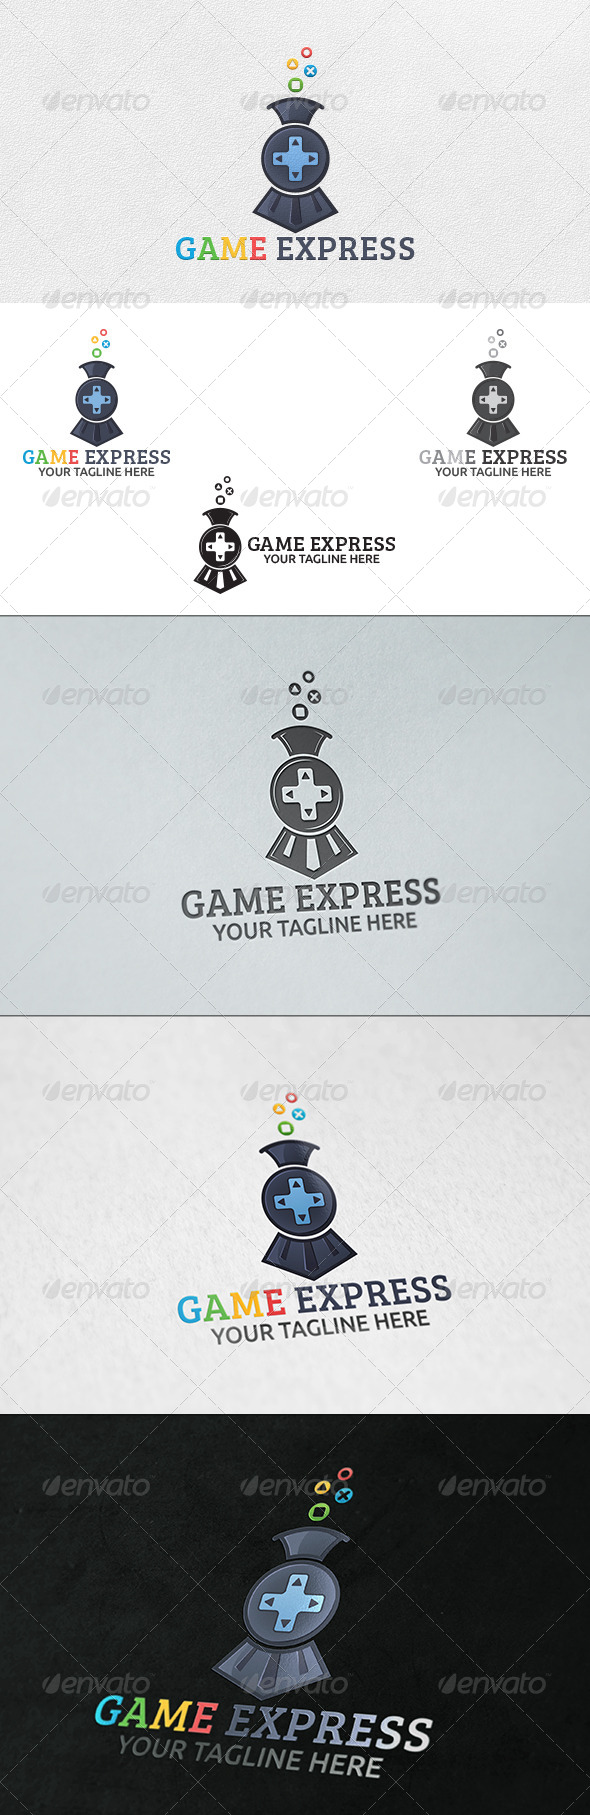 Game Express - Logo Template